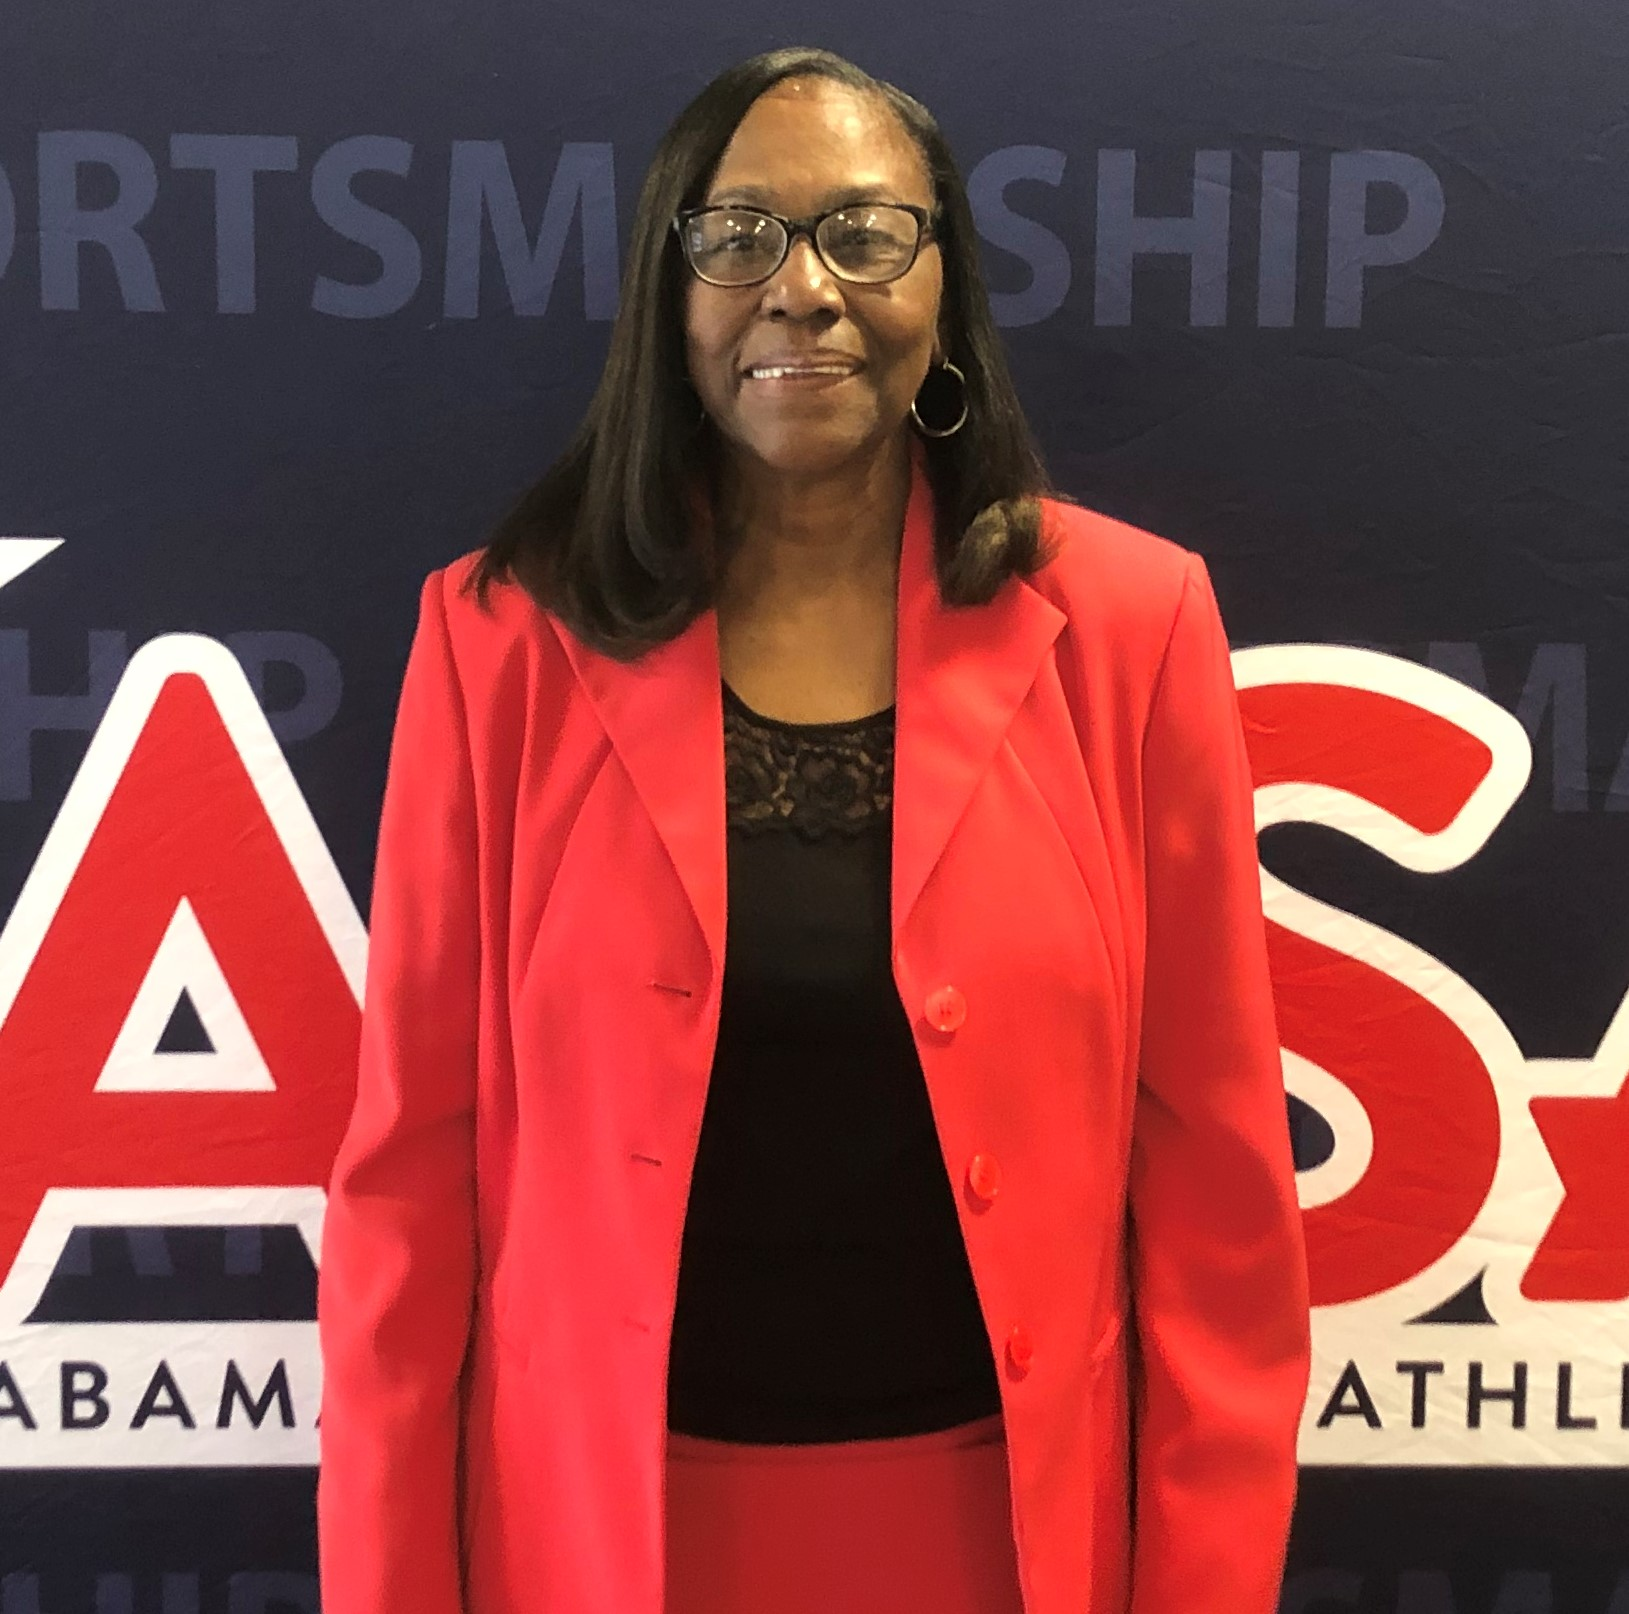 Coach Michelle Simmons Spent Her Entire Career Helping Others